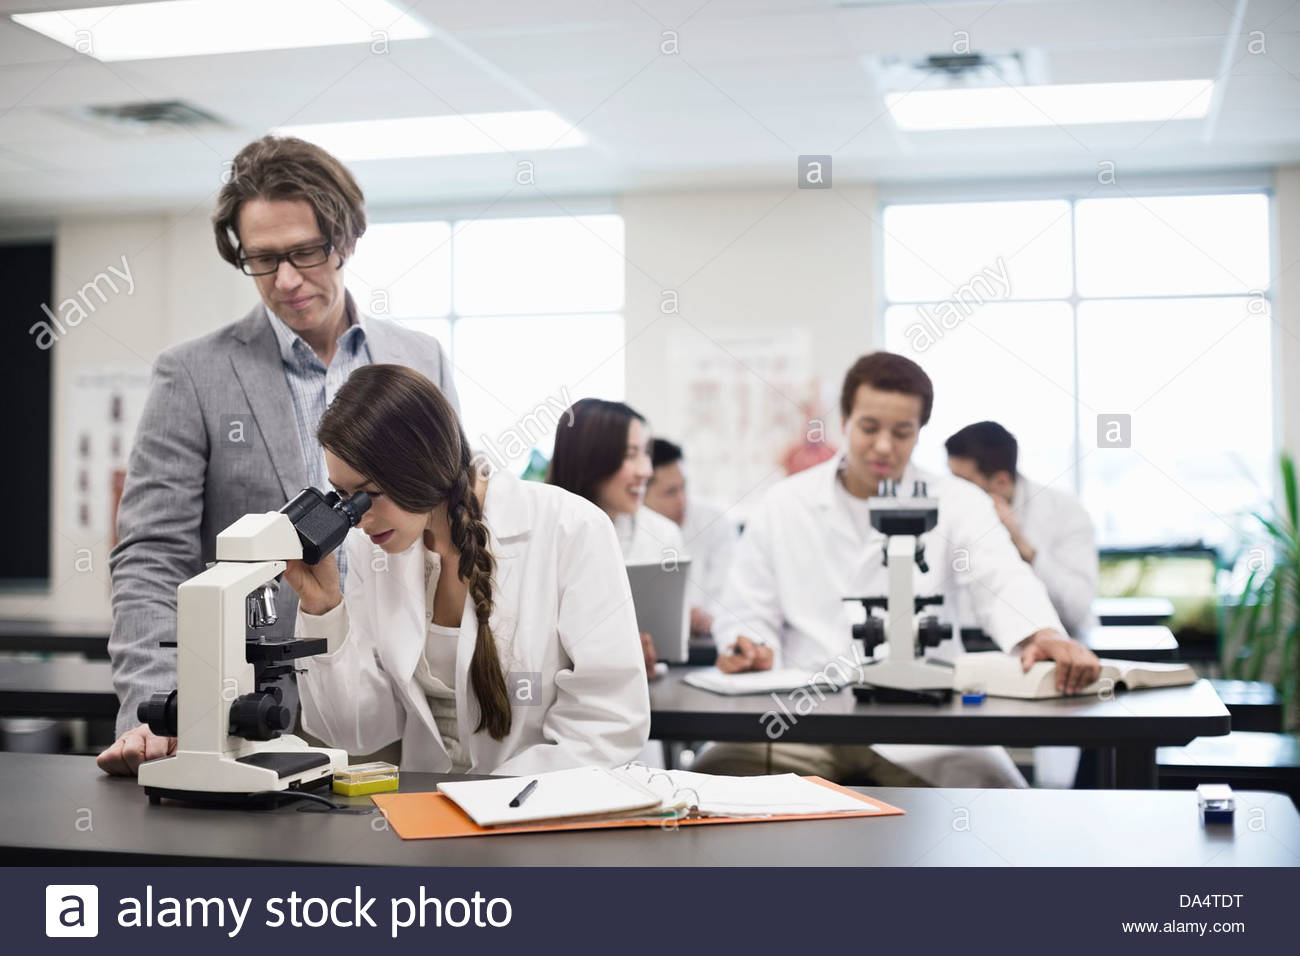 Professor helping female student in college science lab - Stock Image